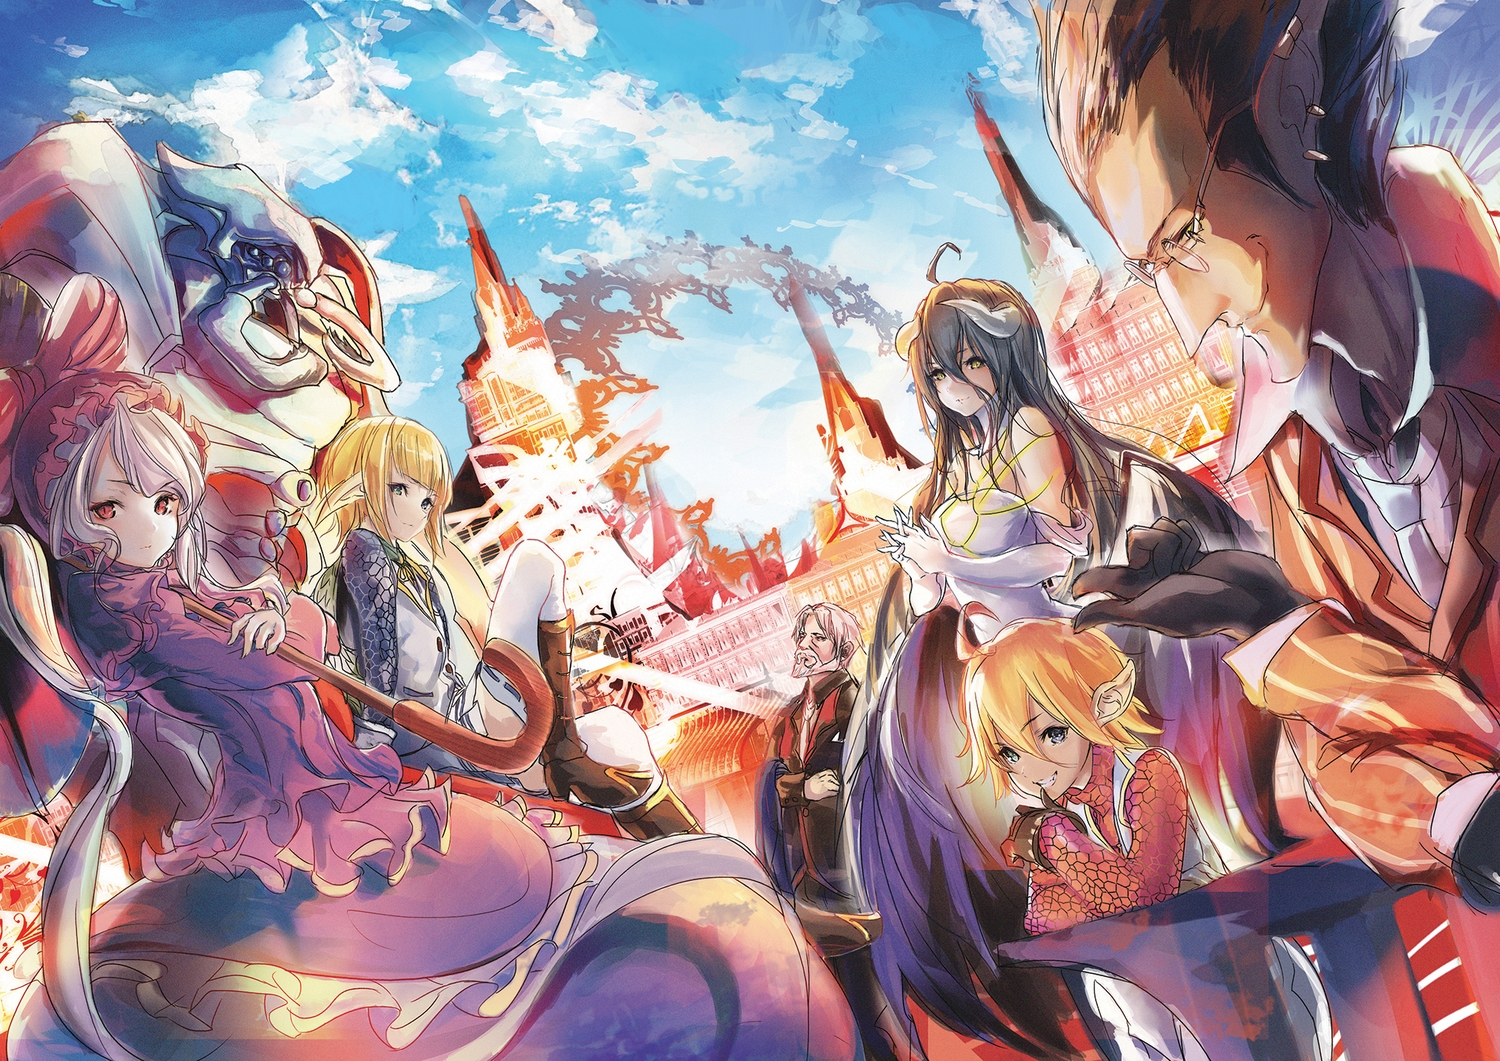 albedo aura_bella_fiora black_eyes black_hair blonde_hair cocytus demiurge demon glasses horns long_hair mare_bello_fiore overlord pointed_ears red_eyes sebas_tian shalltear_bloodfallen short_hair trap vampire white_hair wings xeirn